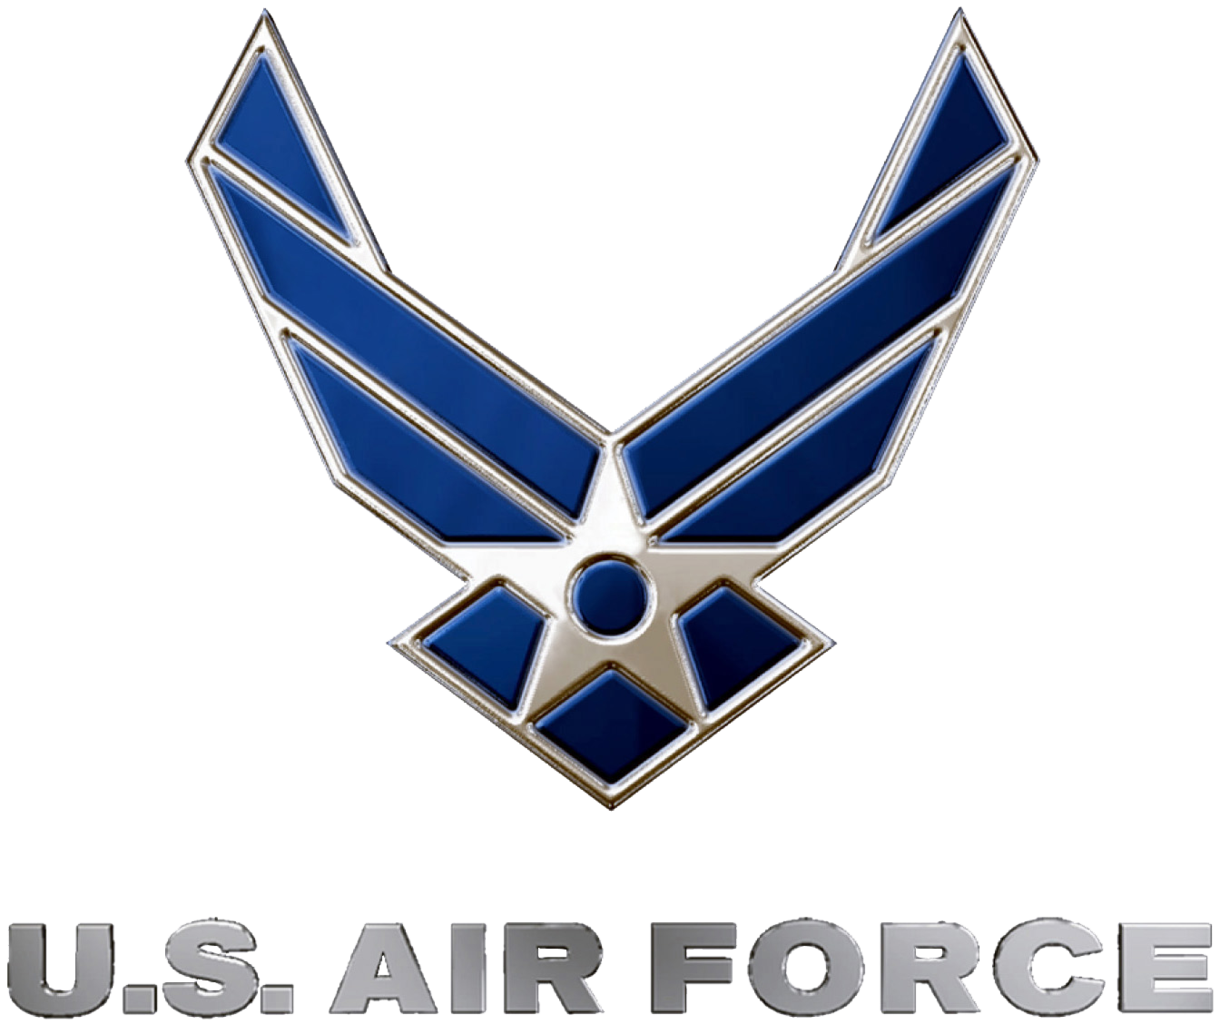 Air force logo png. File usaf wikipedia fileusaf